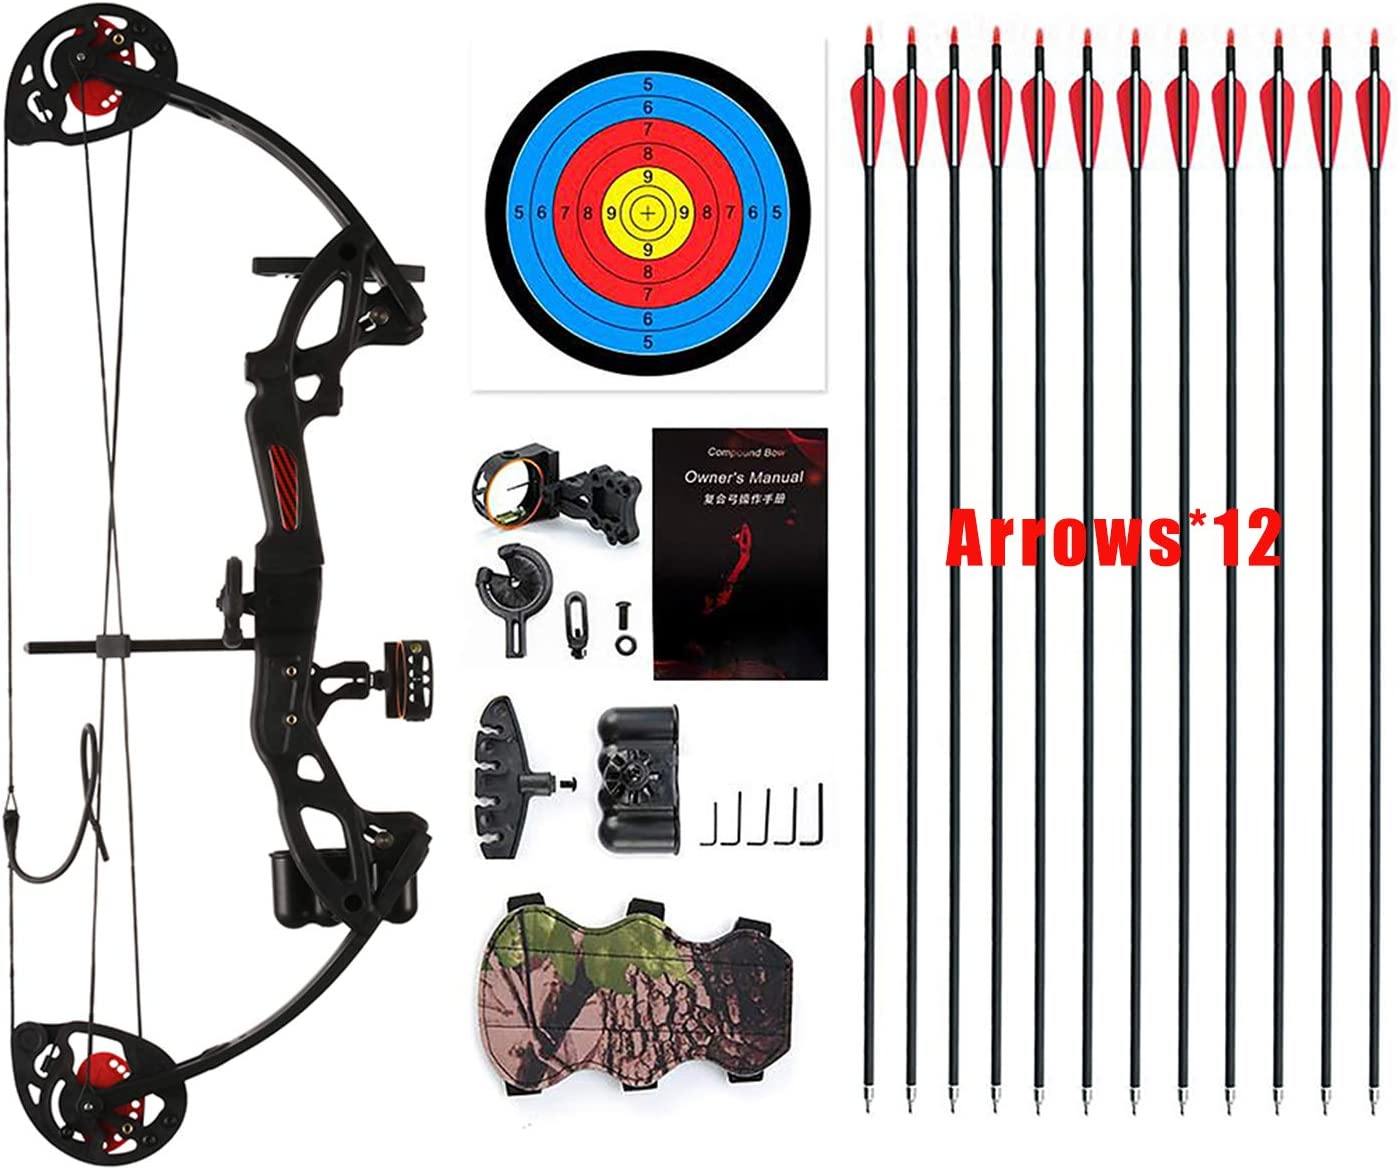 """PANDARUS Compound Bow Archery for Youth and Beginner, Right Handed,19""""-28"""" Draw Length,15-29 Lbs Draw Weight, 260 fps, Package with Archery Hunting Equipment"""